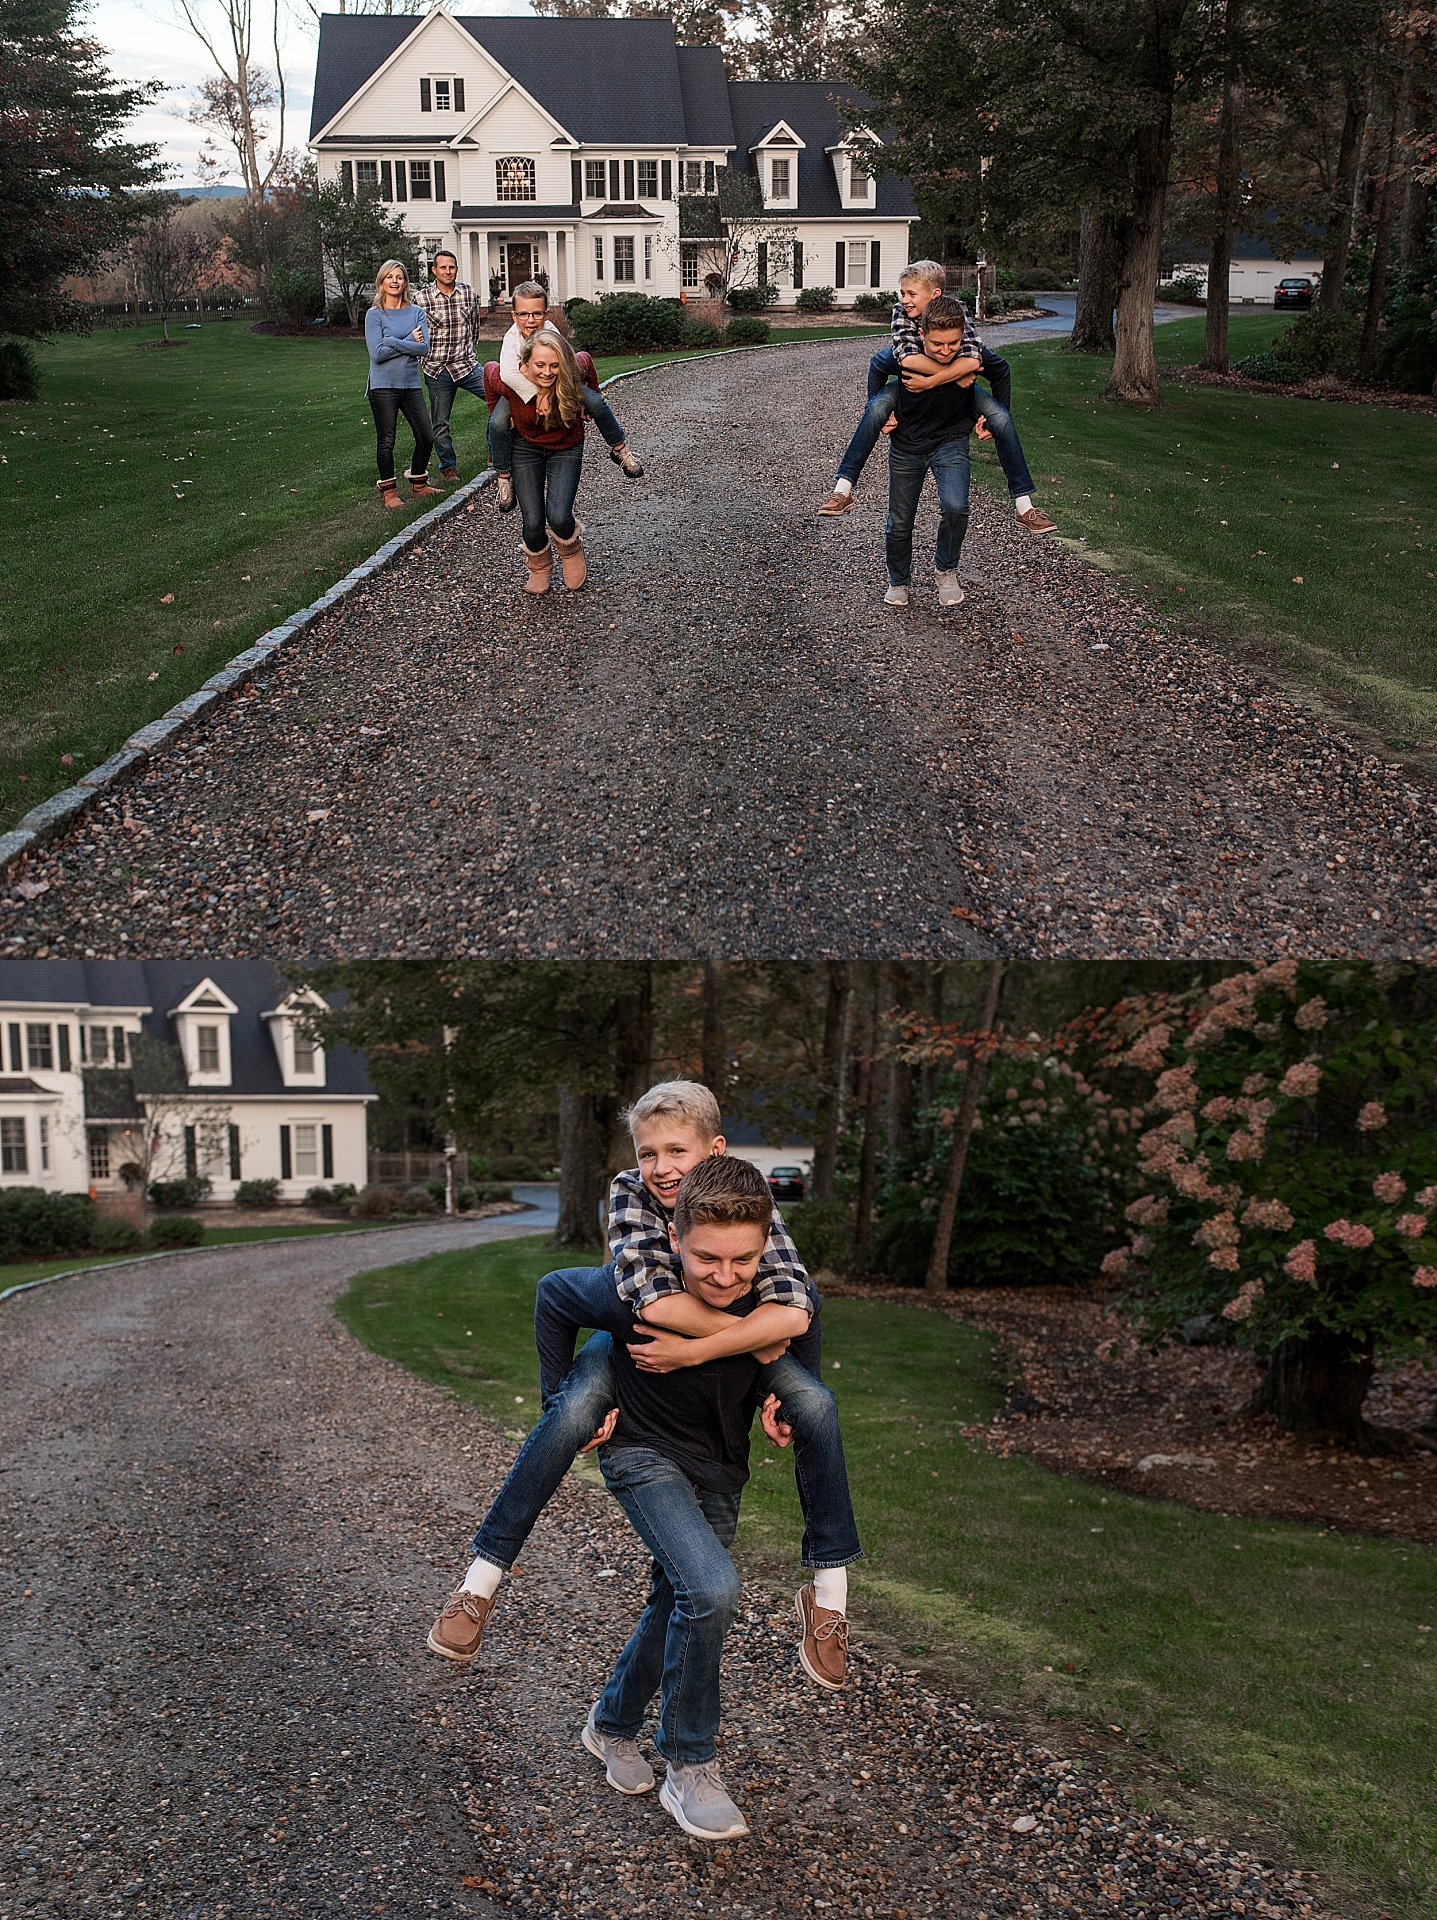 children giving each other piggy back rides during, litchfield county photography